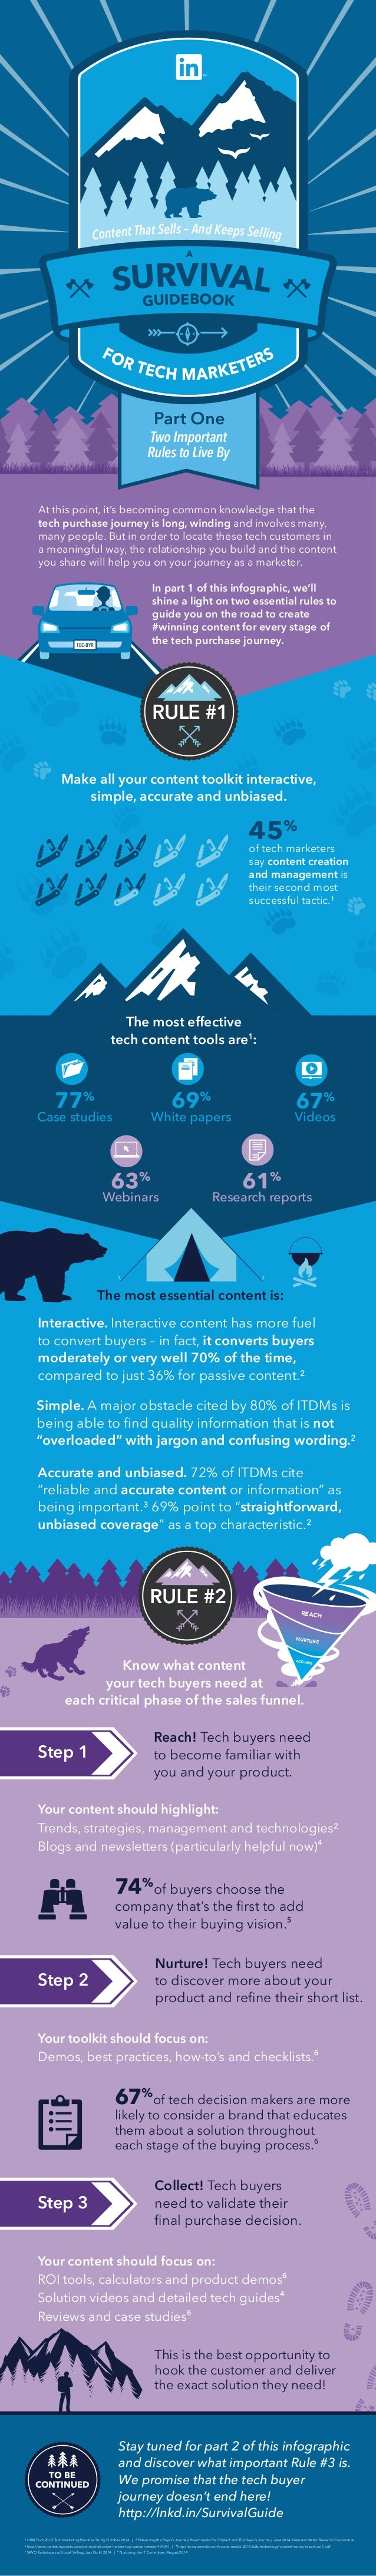 FOR TECH MARKETERS At this point, it's becoming common knowledge that the tech purchase journey is long, winding and invol...